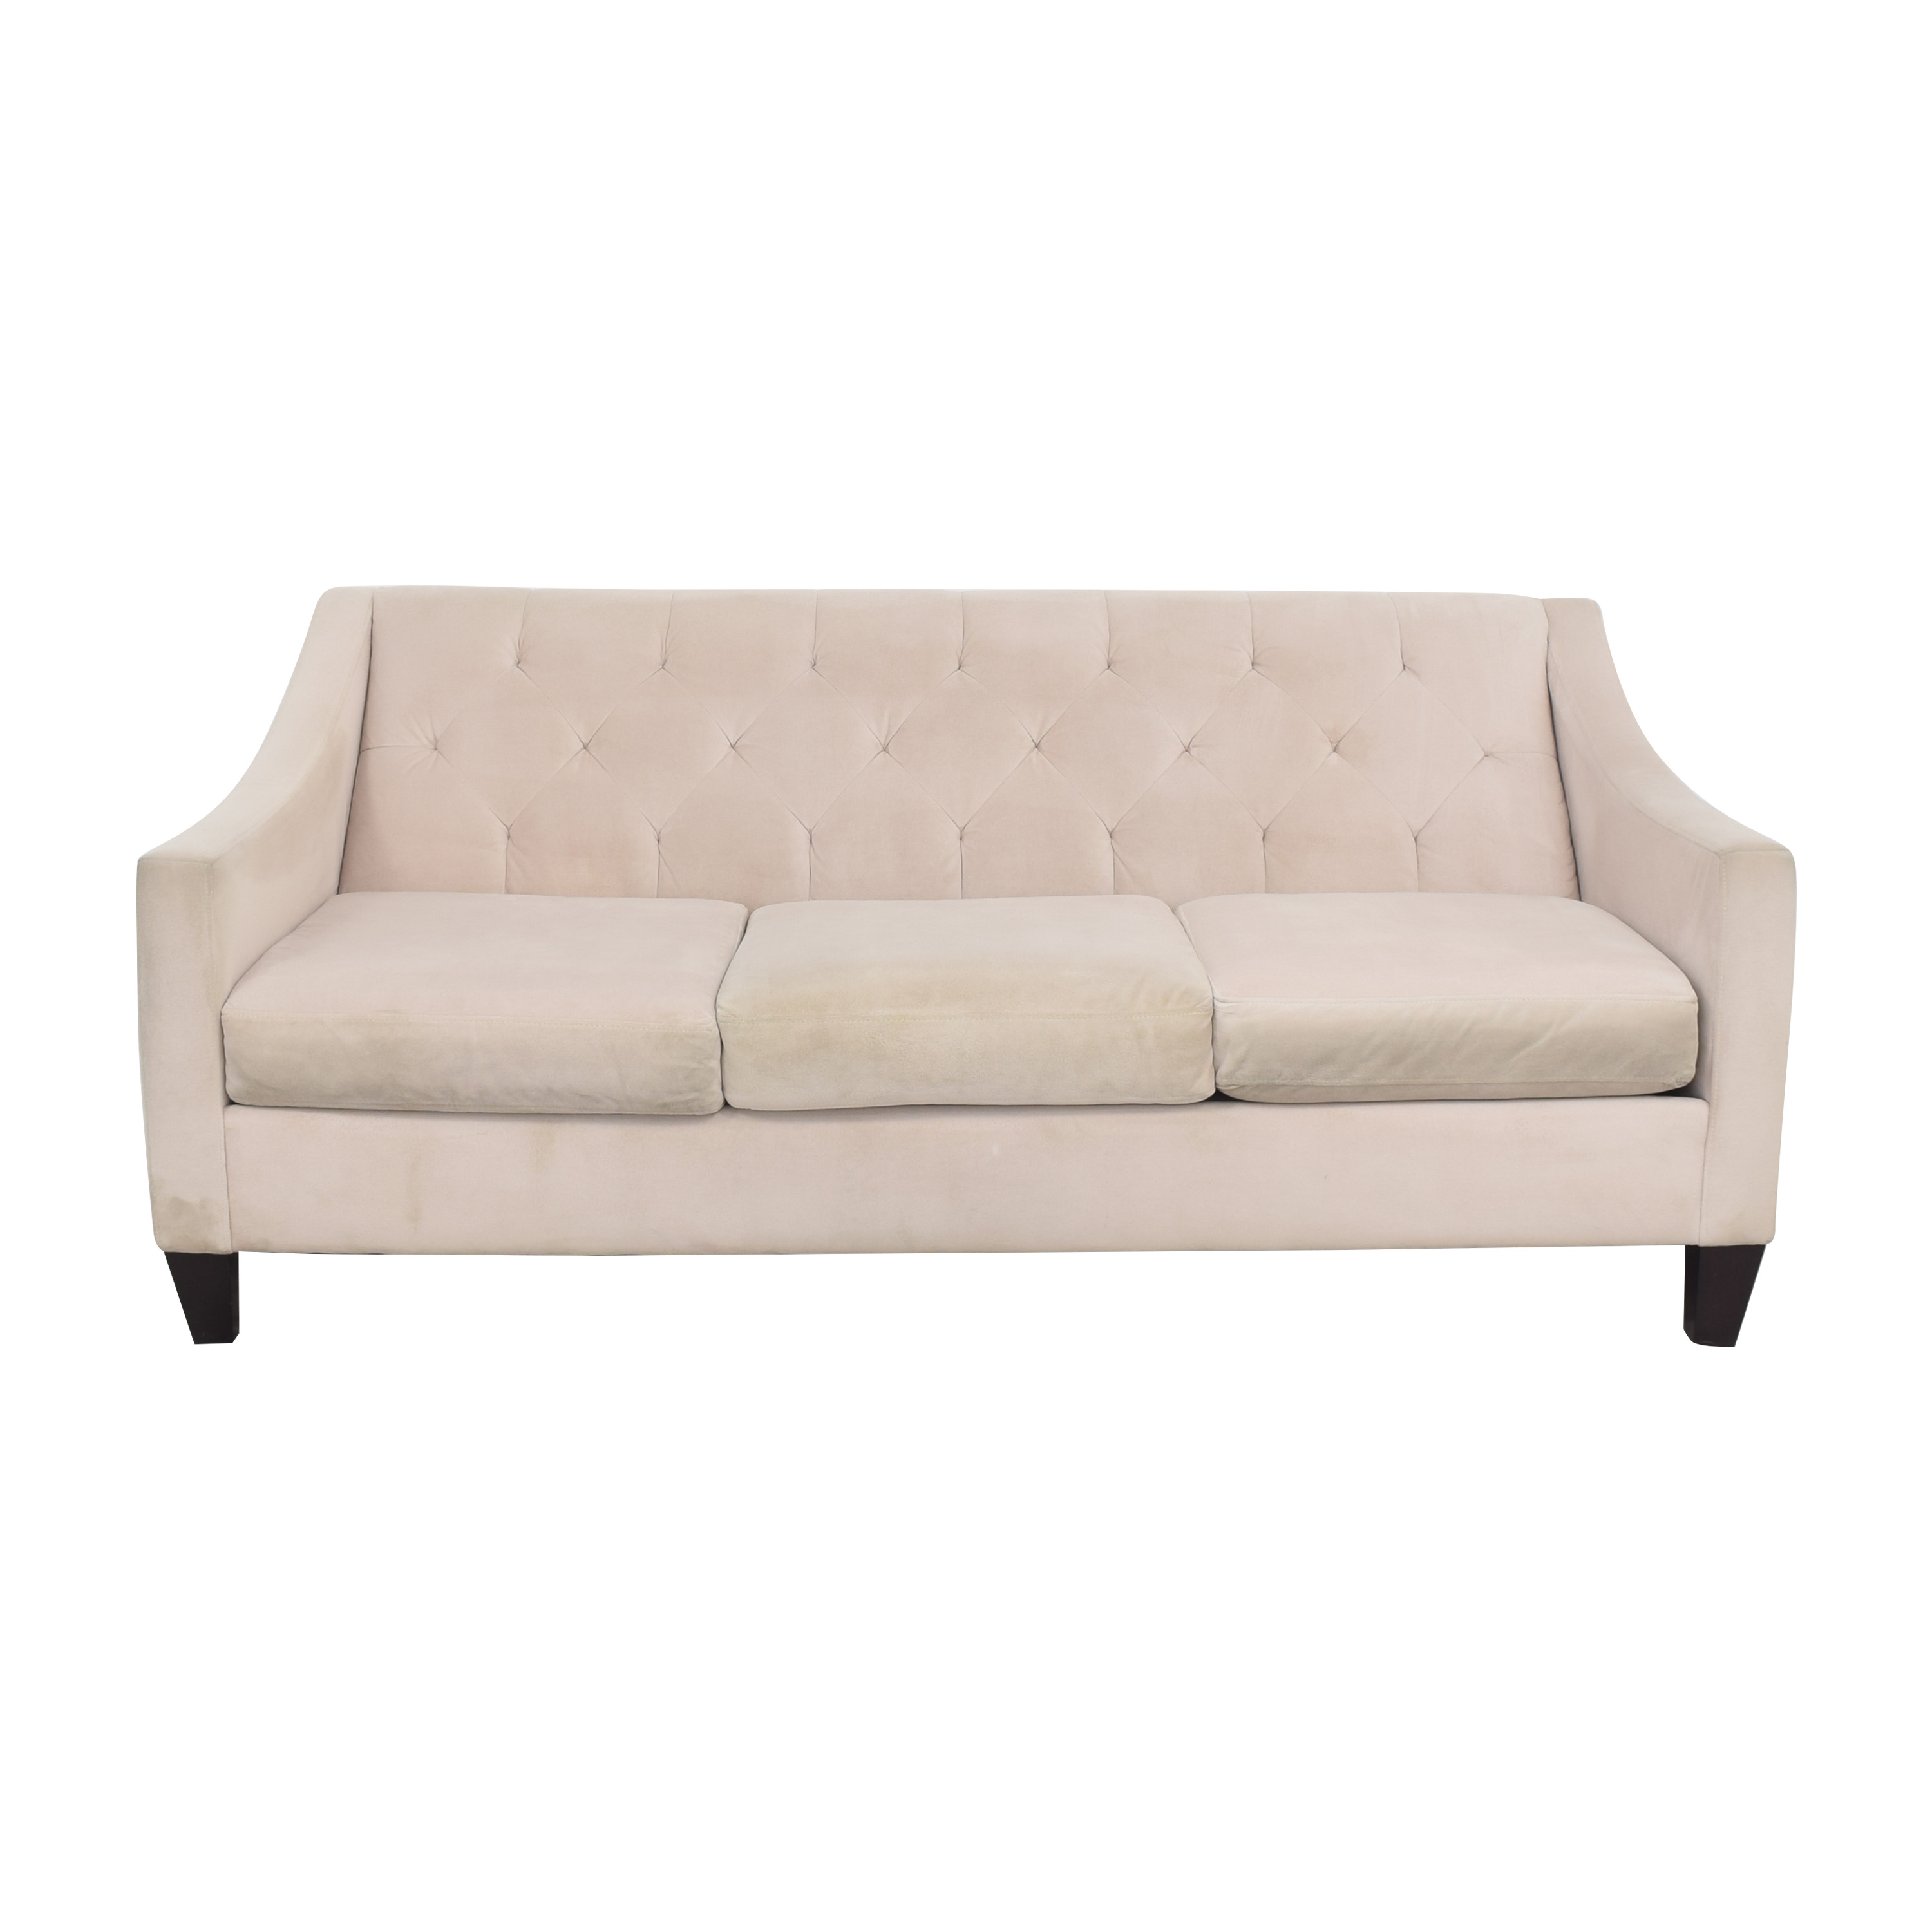 78 Off Max Home Max Home Tufted Microfiber Three Cushion Couch Sofas